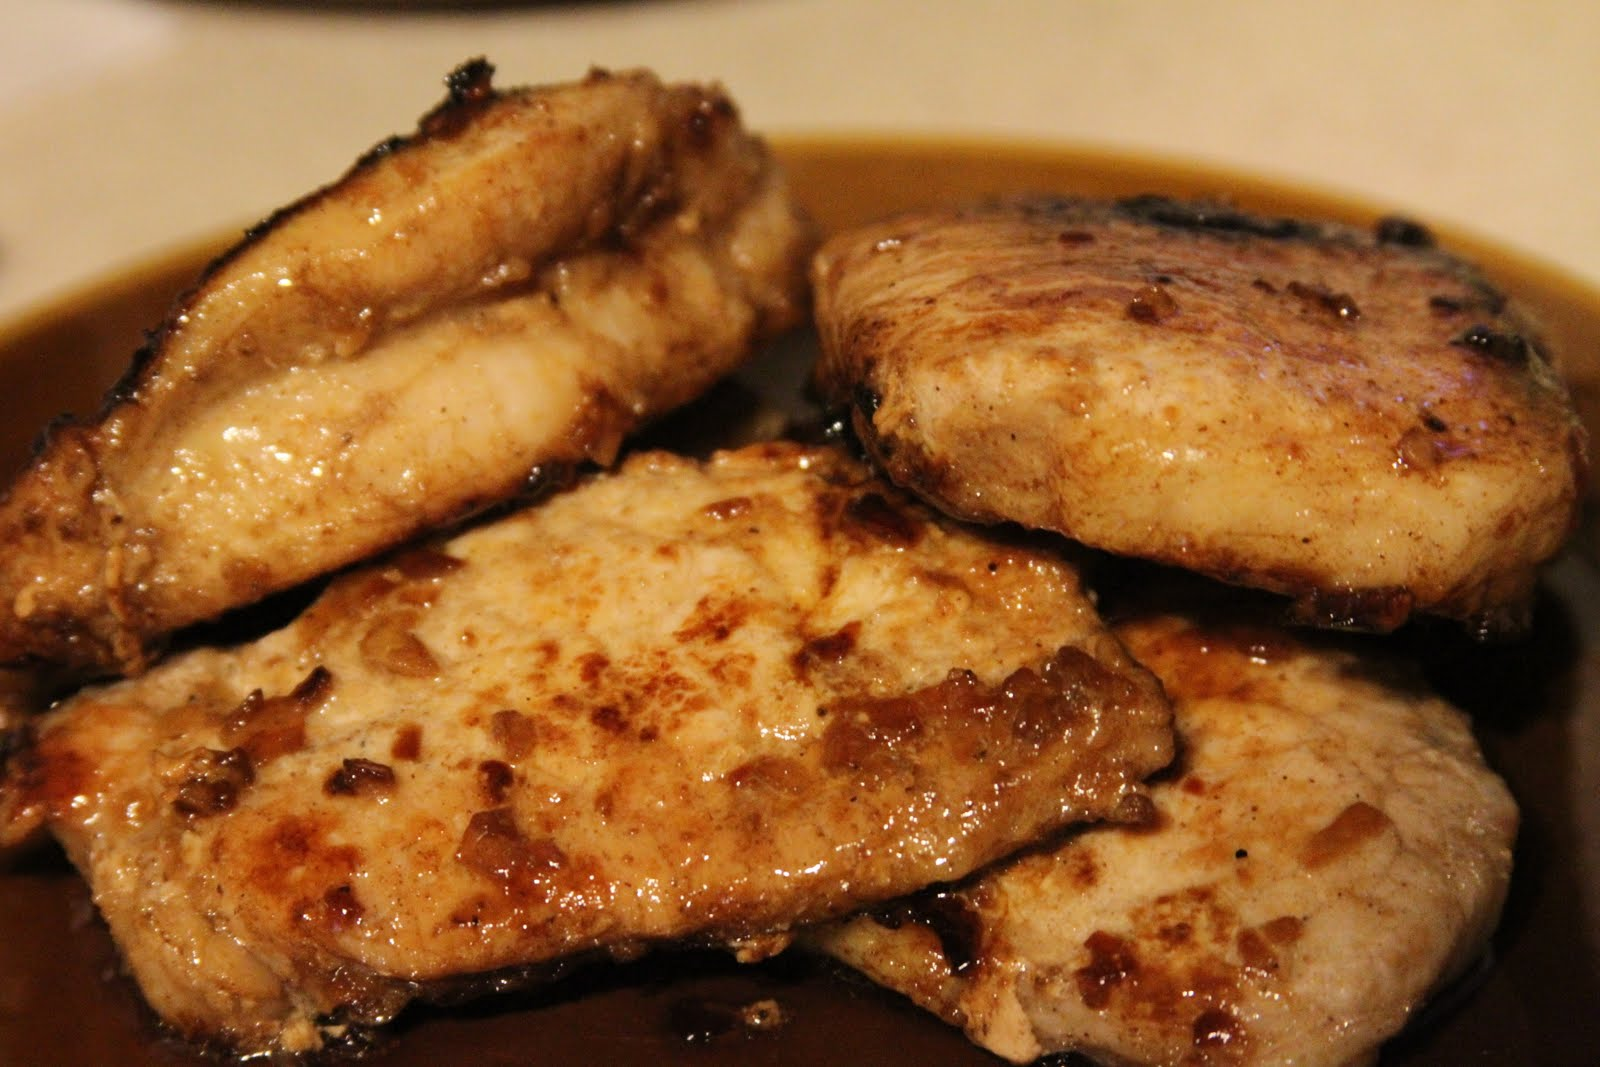 Home Kine Grindz: Five-Spiced Pork Chops